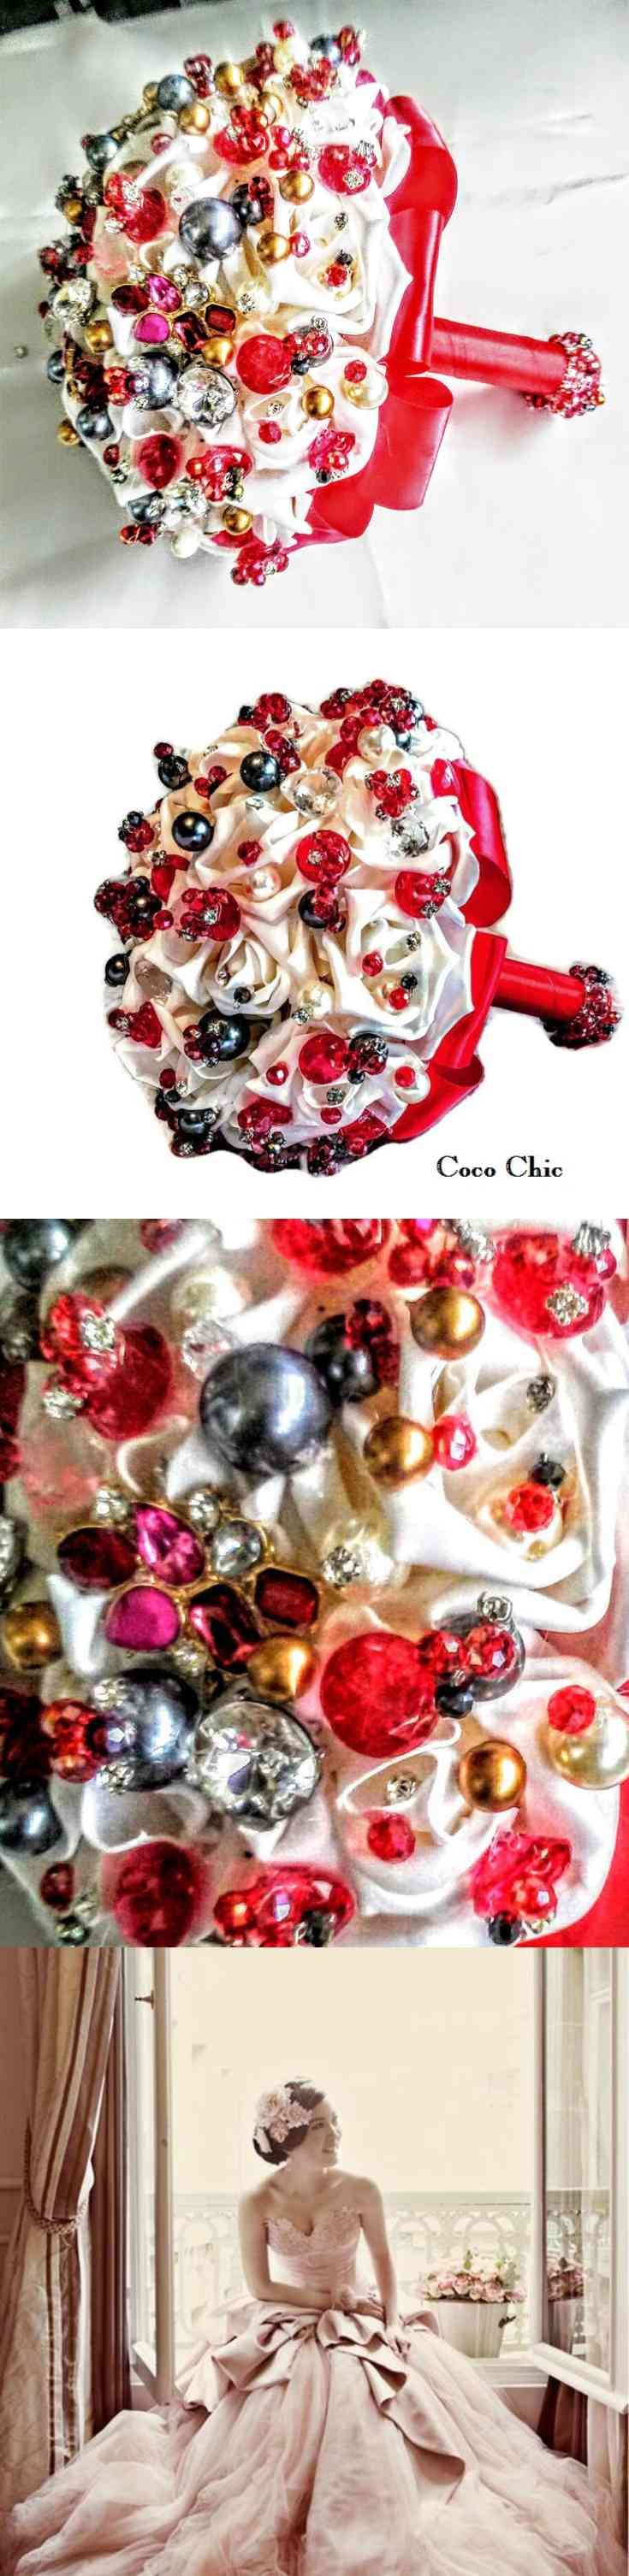 Brooch Bouquet, Red Crystals Rhinestones, Button Bouquet, Brides Wedding Bouquet, Bridal Bouquet, Brides Bouquet, Brooch Bouquet, Alternative Bouquet, Bridesmaids, Red Crystals tis gourgaus bouquet is very special If you want to stand out from the crowd and have something just that little bit different on your wedding day,. Each button bouquet is handmade using a (...) (via pushapin.com)